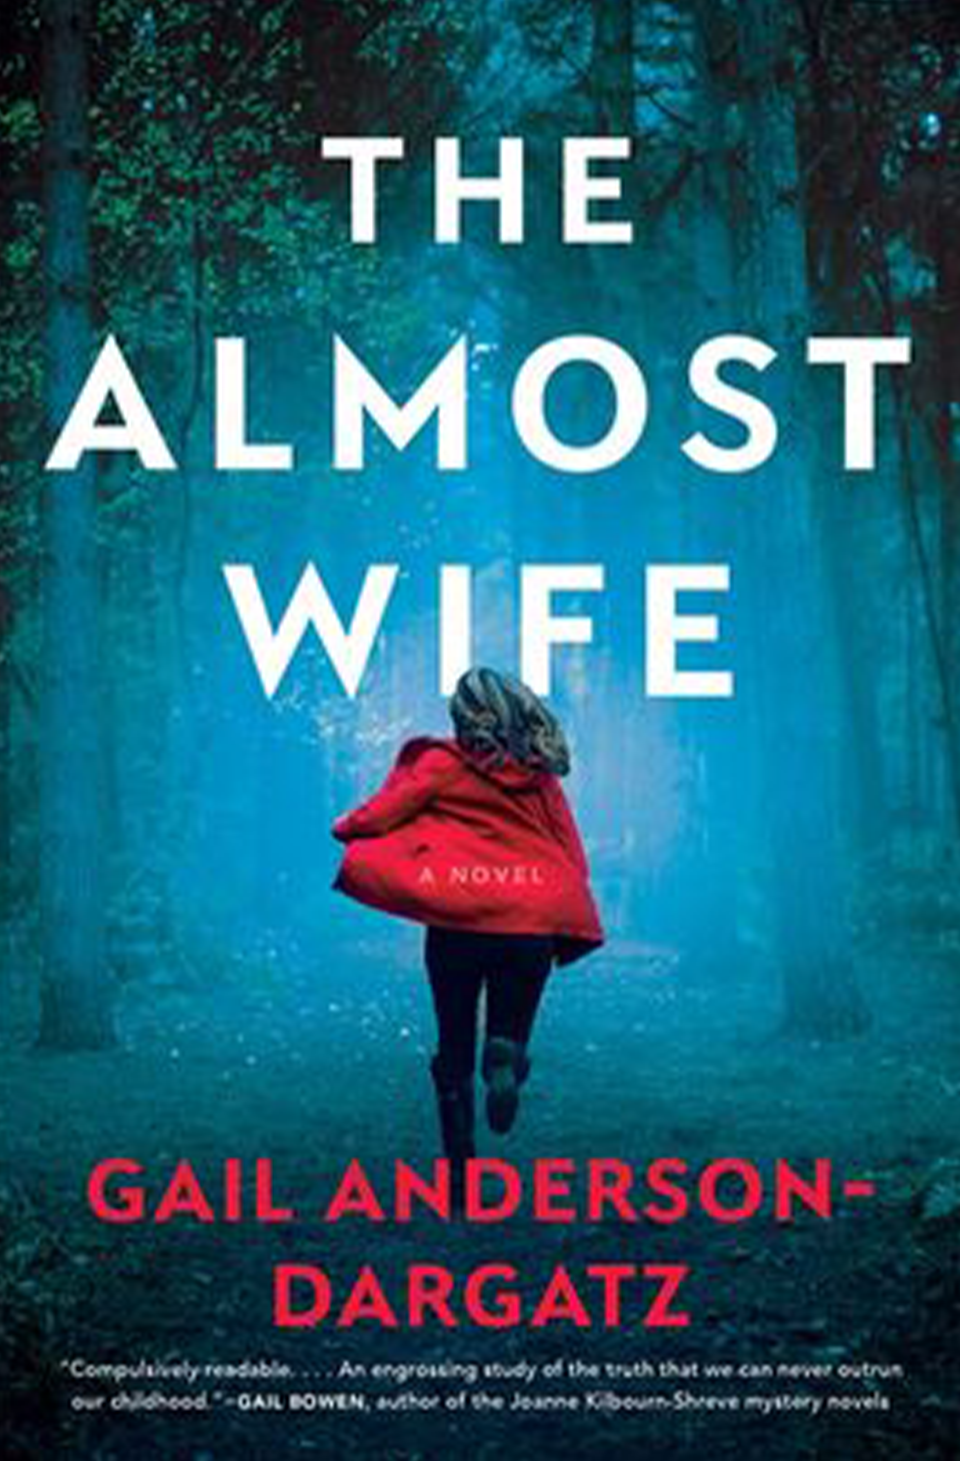 The Almost Wife by Gail Anderson-Dargatz